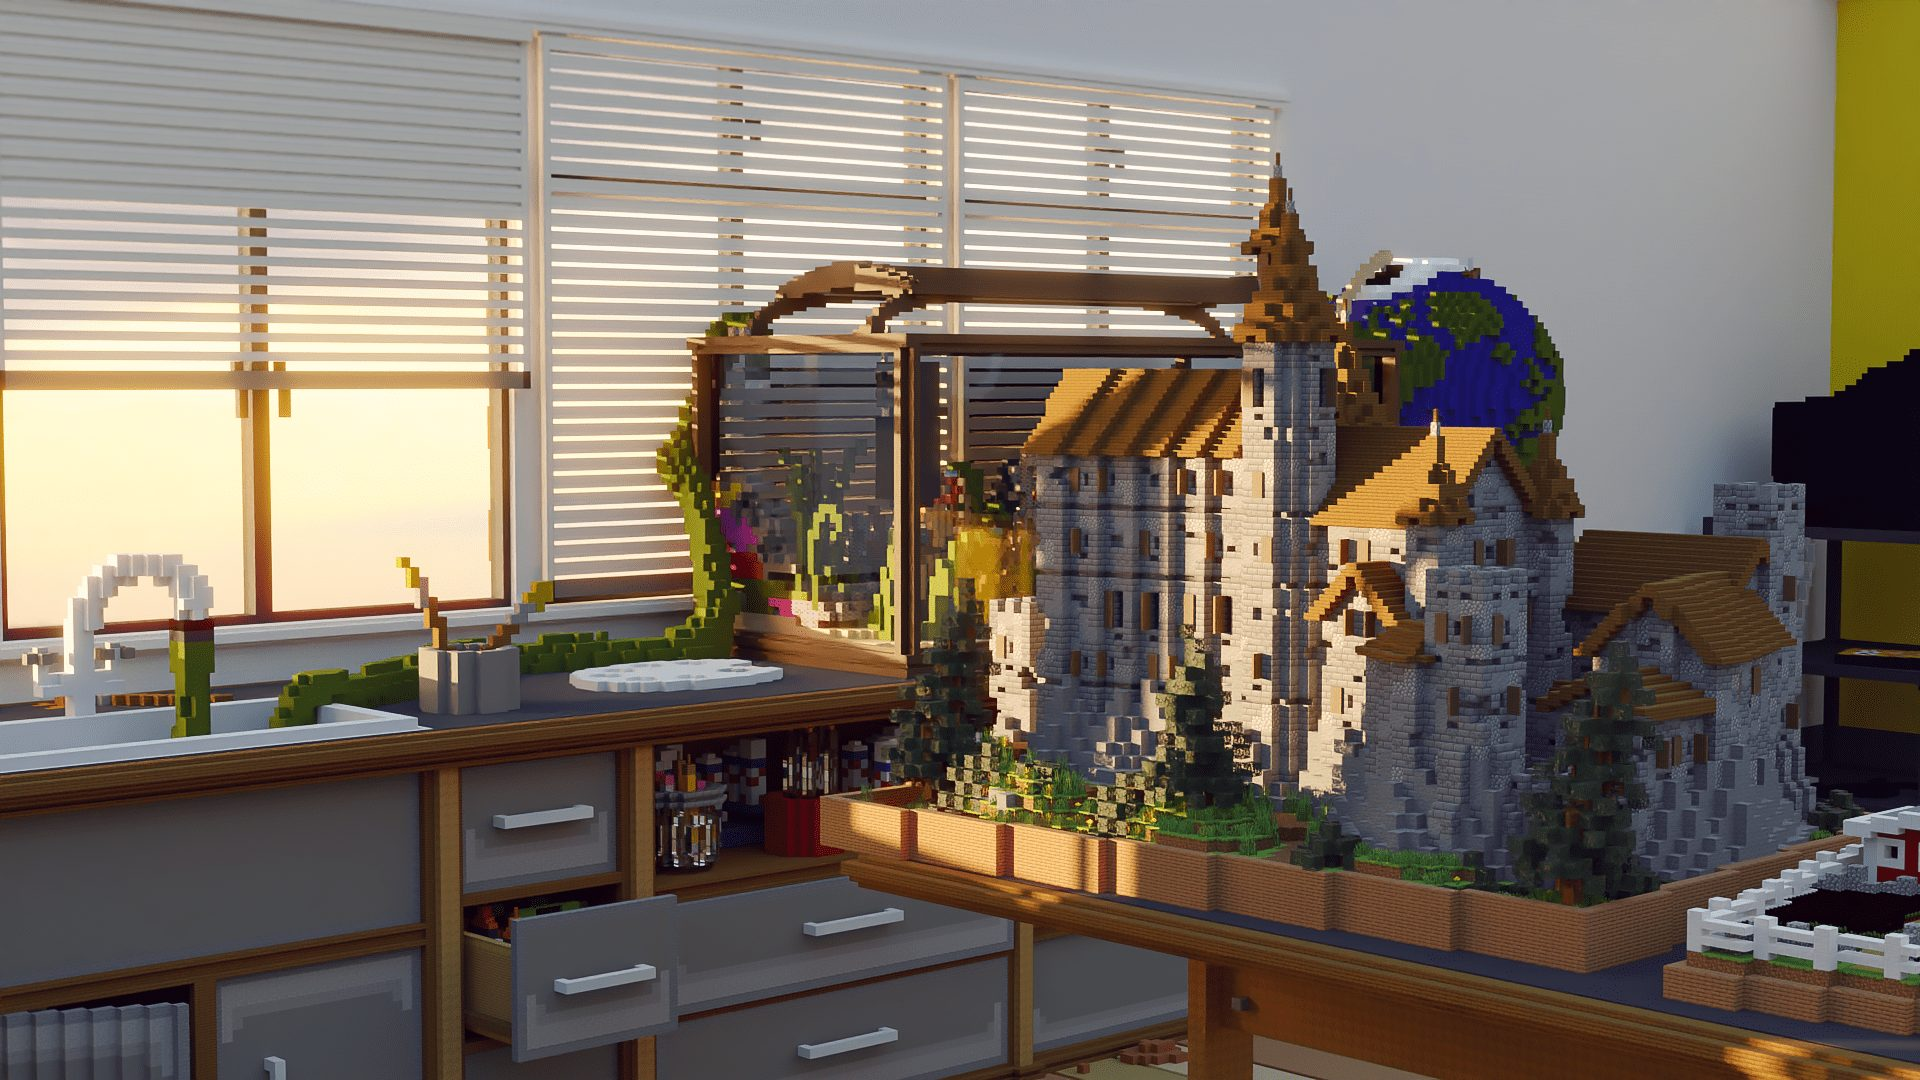 Papercraft Adventure by Jigarbov Productions